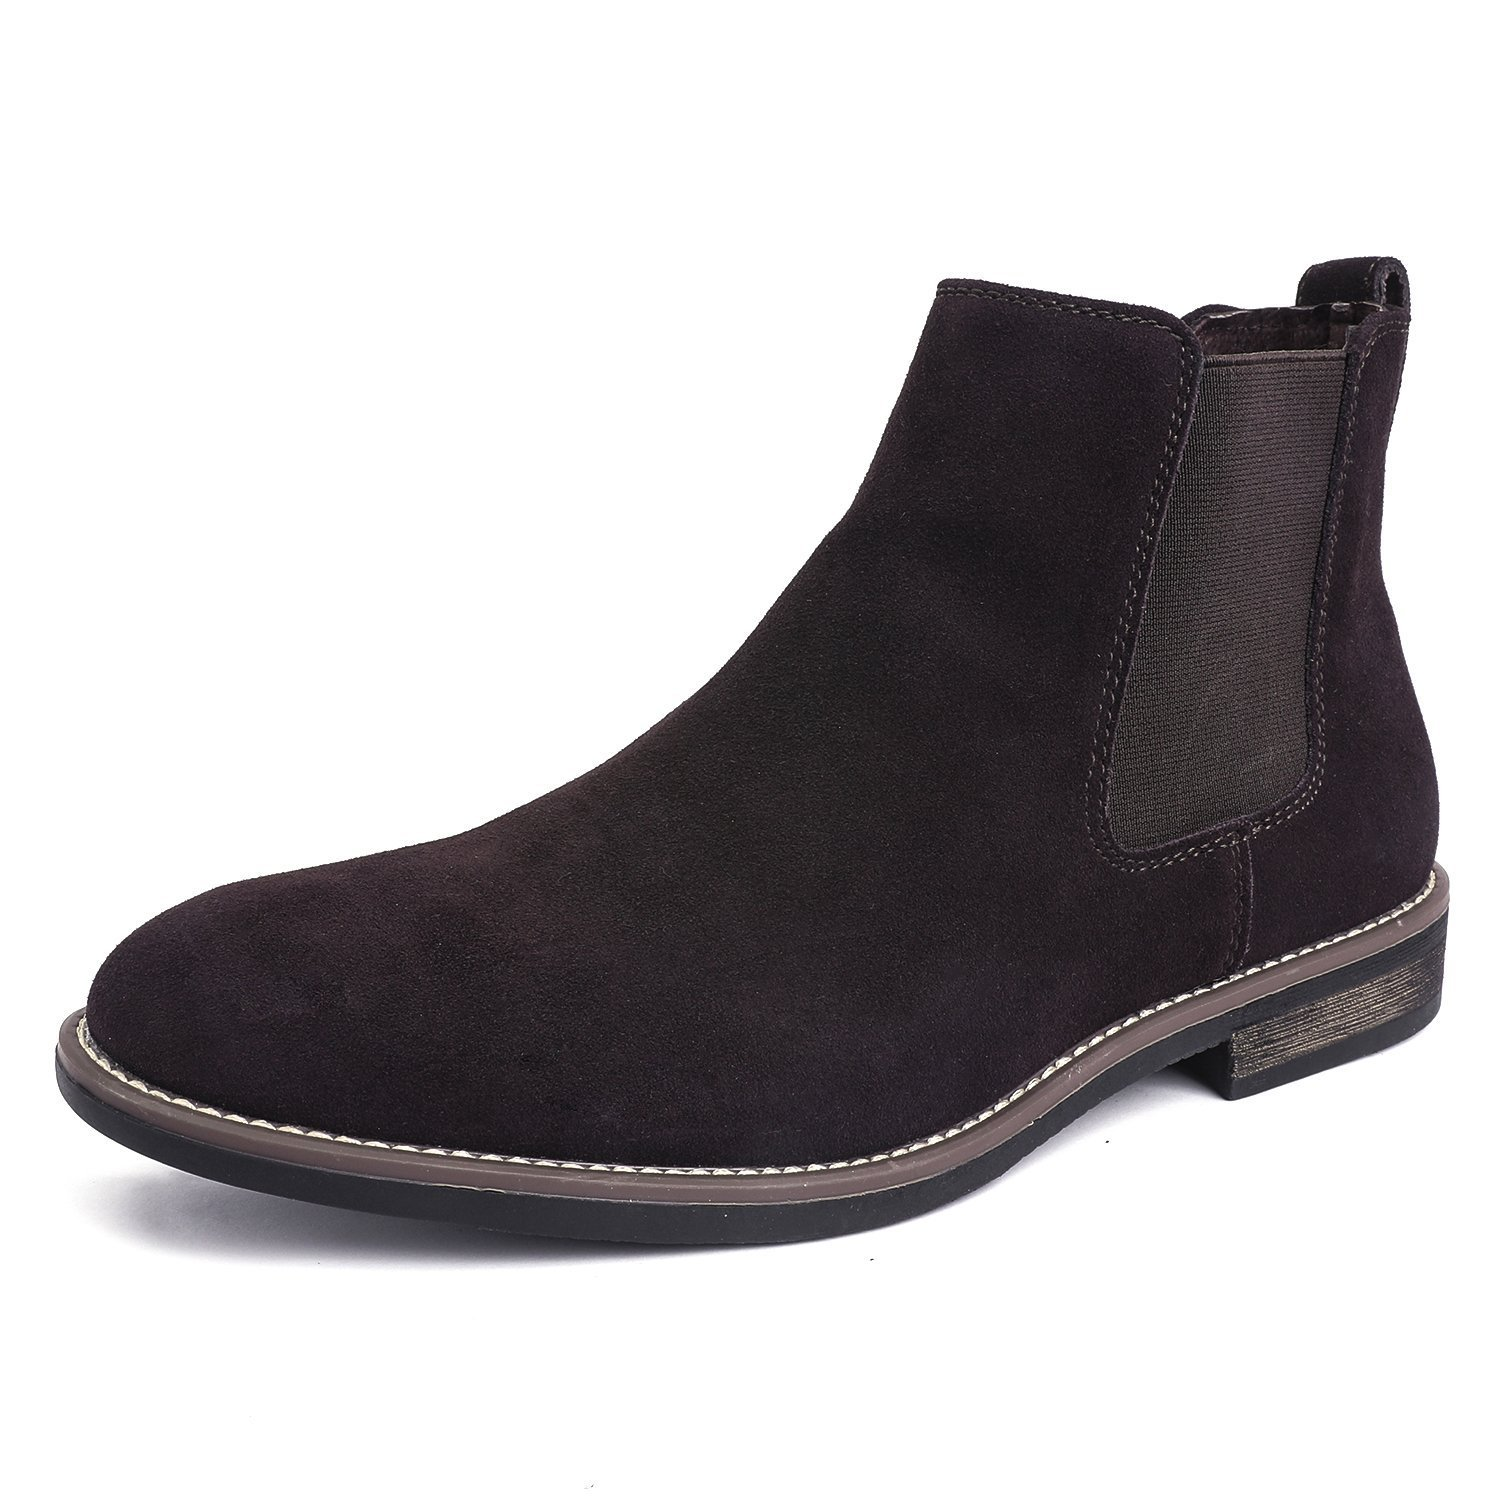 142d89d766540 Amazon.com | BRUNO MARC NEW YORK Men's Urban-06 Suede Leather Chukka Ankle  Boots | Boots